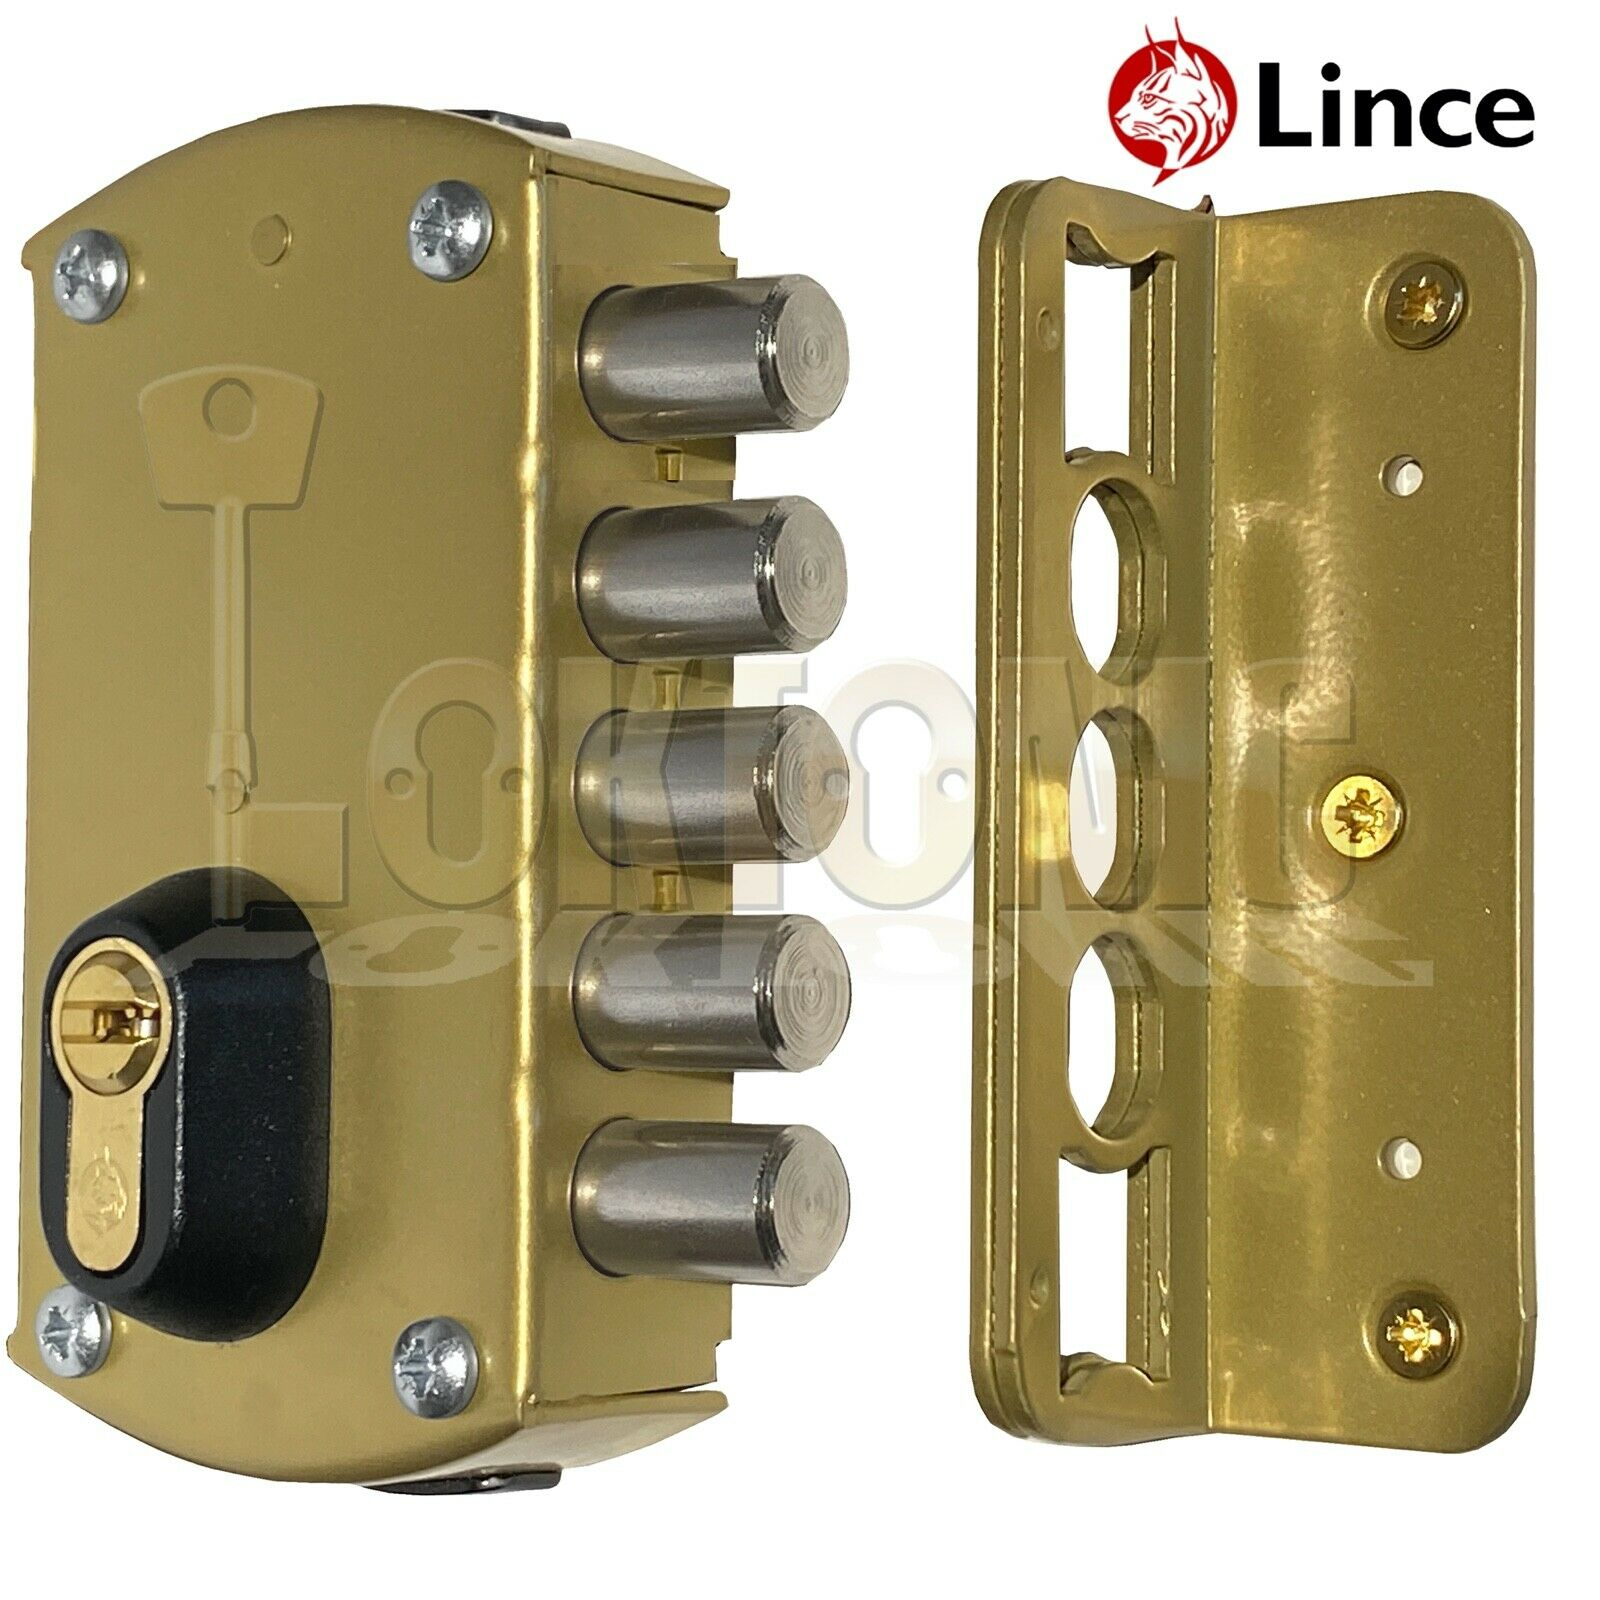 Lince 5 BOLT Rim High Security Euro Dead Bolt Lock Case 5 Secure Dimple Keys